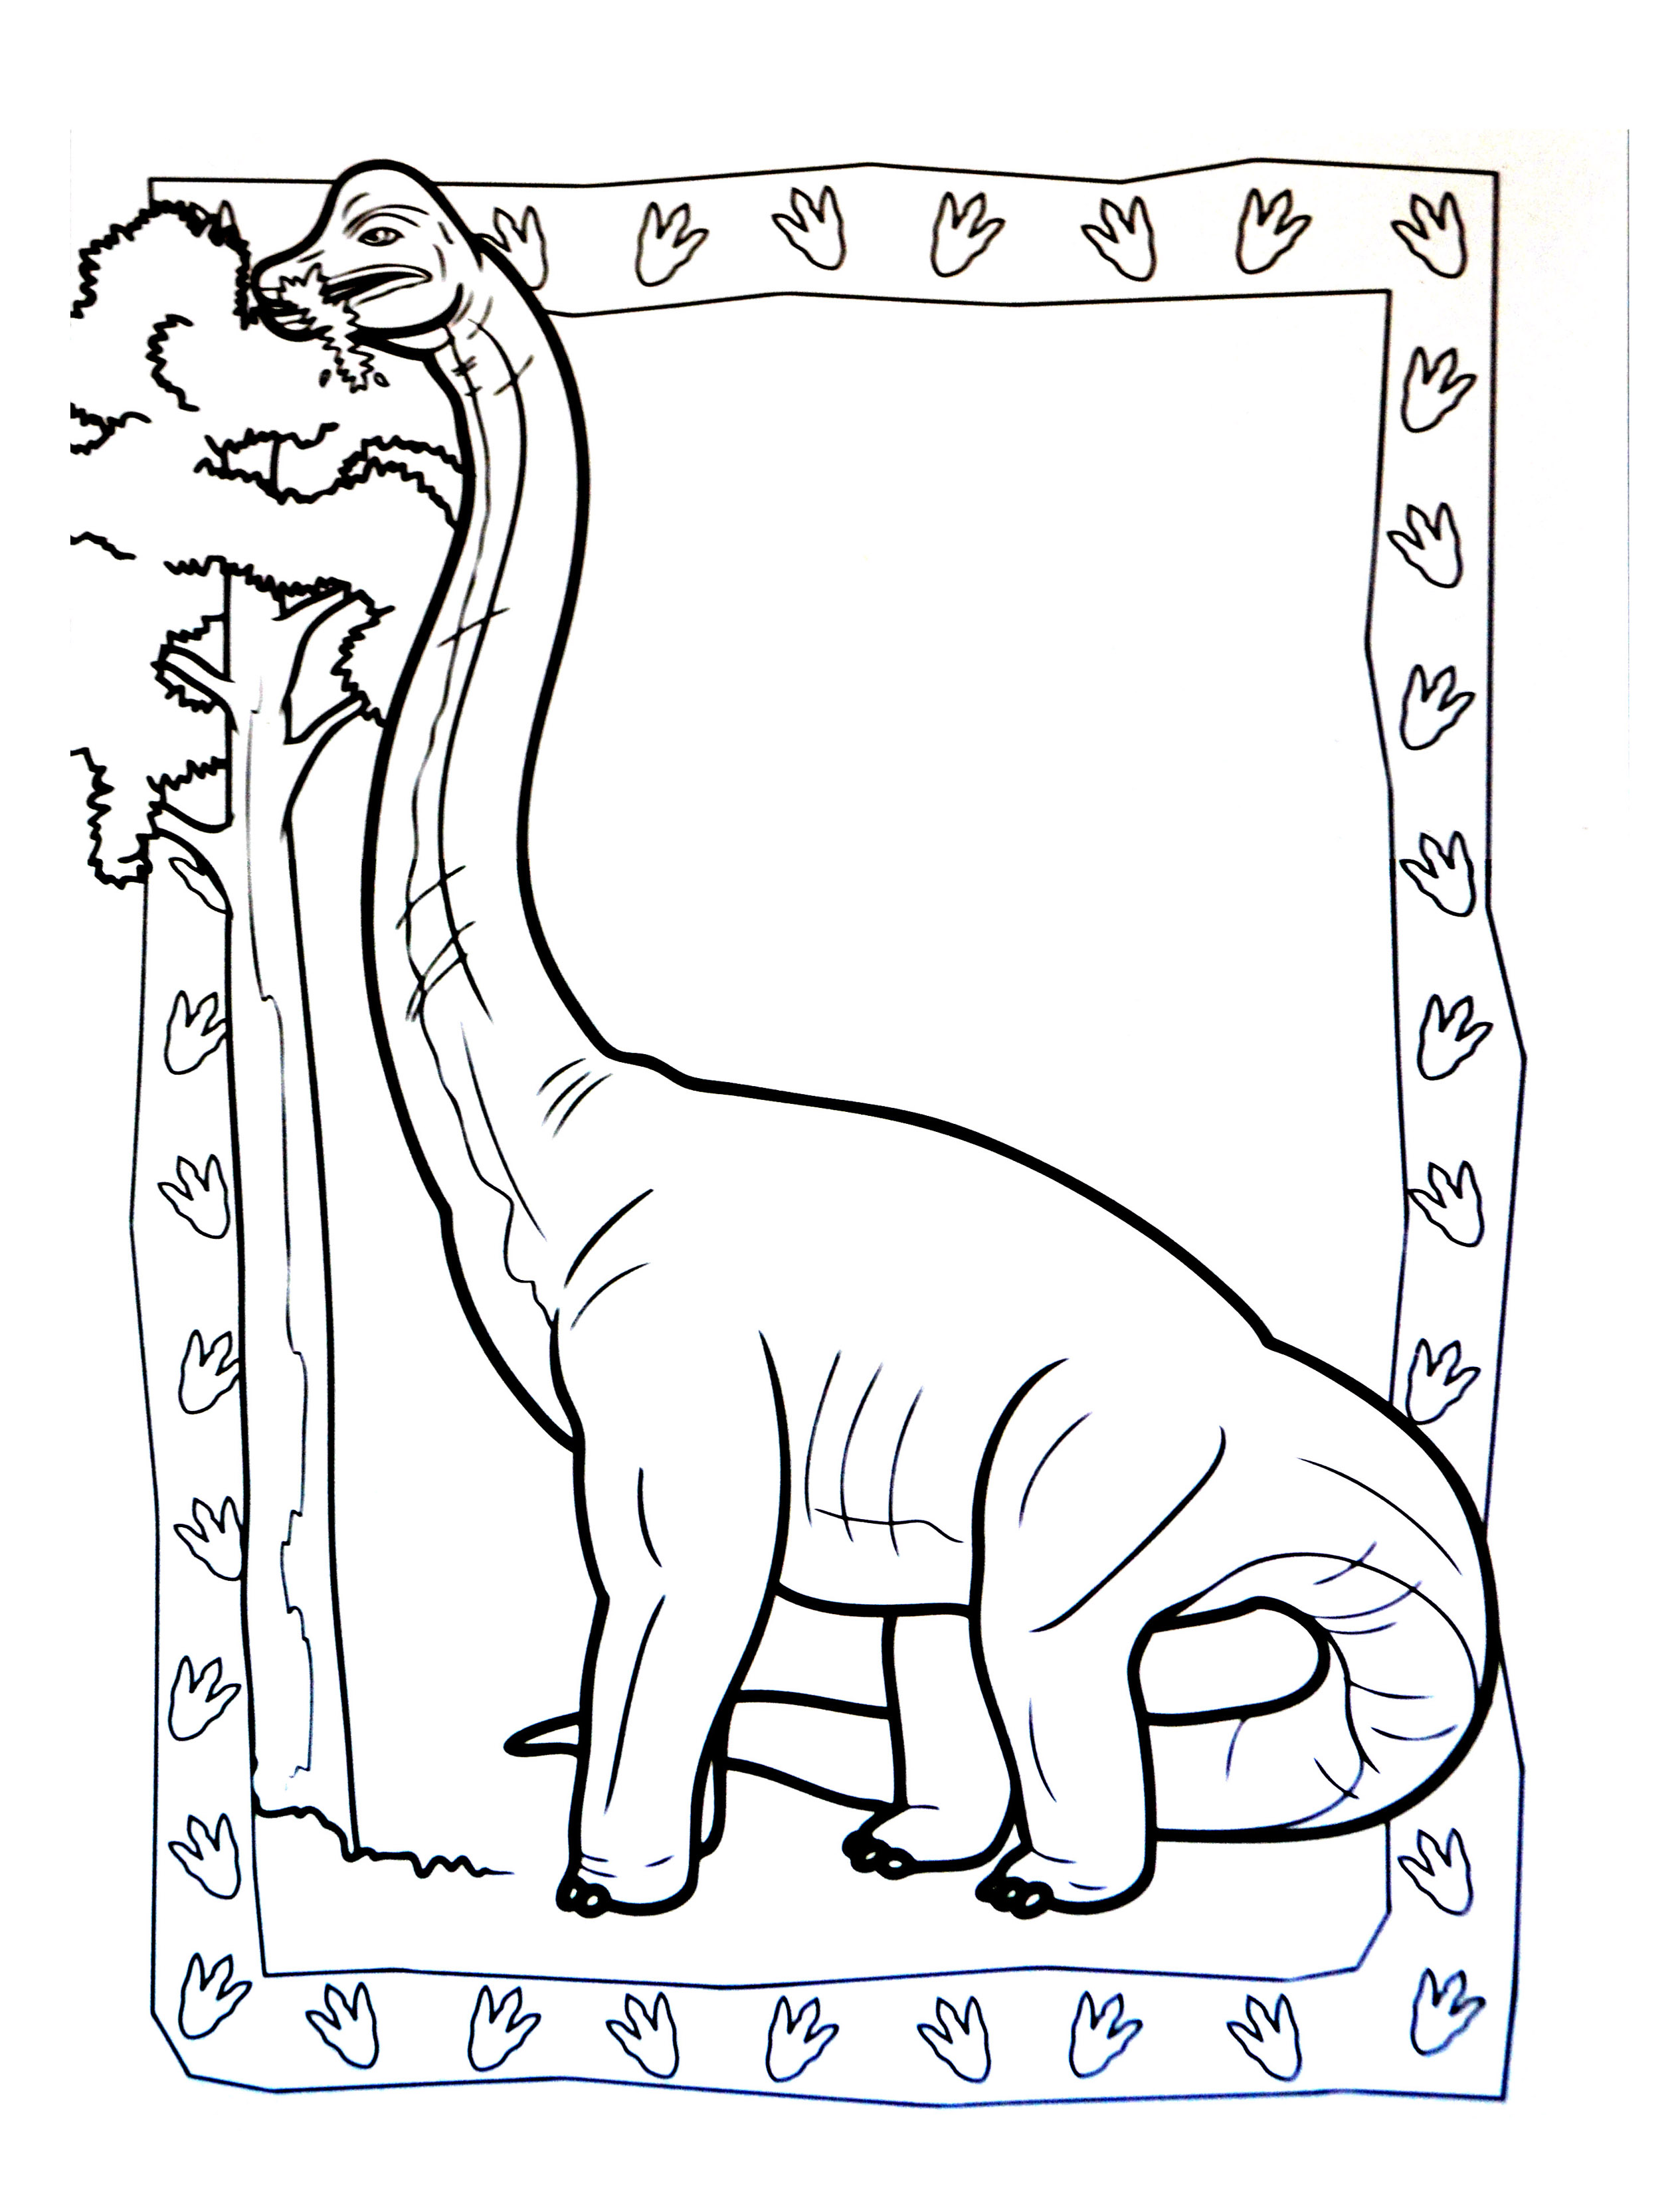 Free Dinosaurs coloring page to print and color : Brachiosaur eating